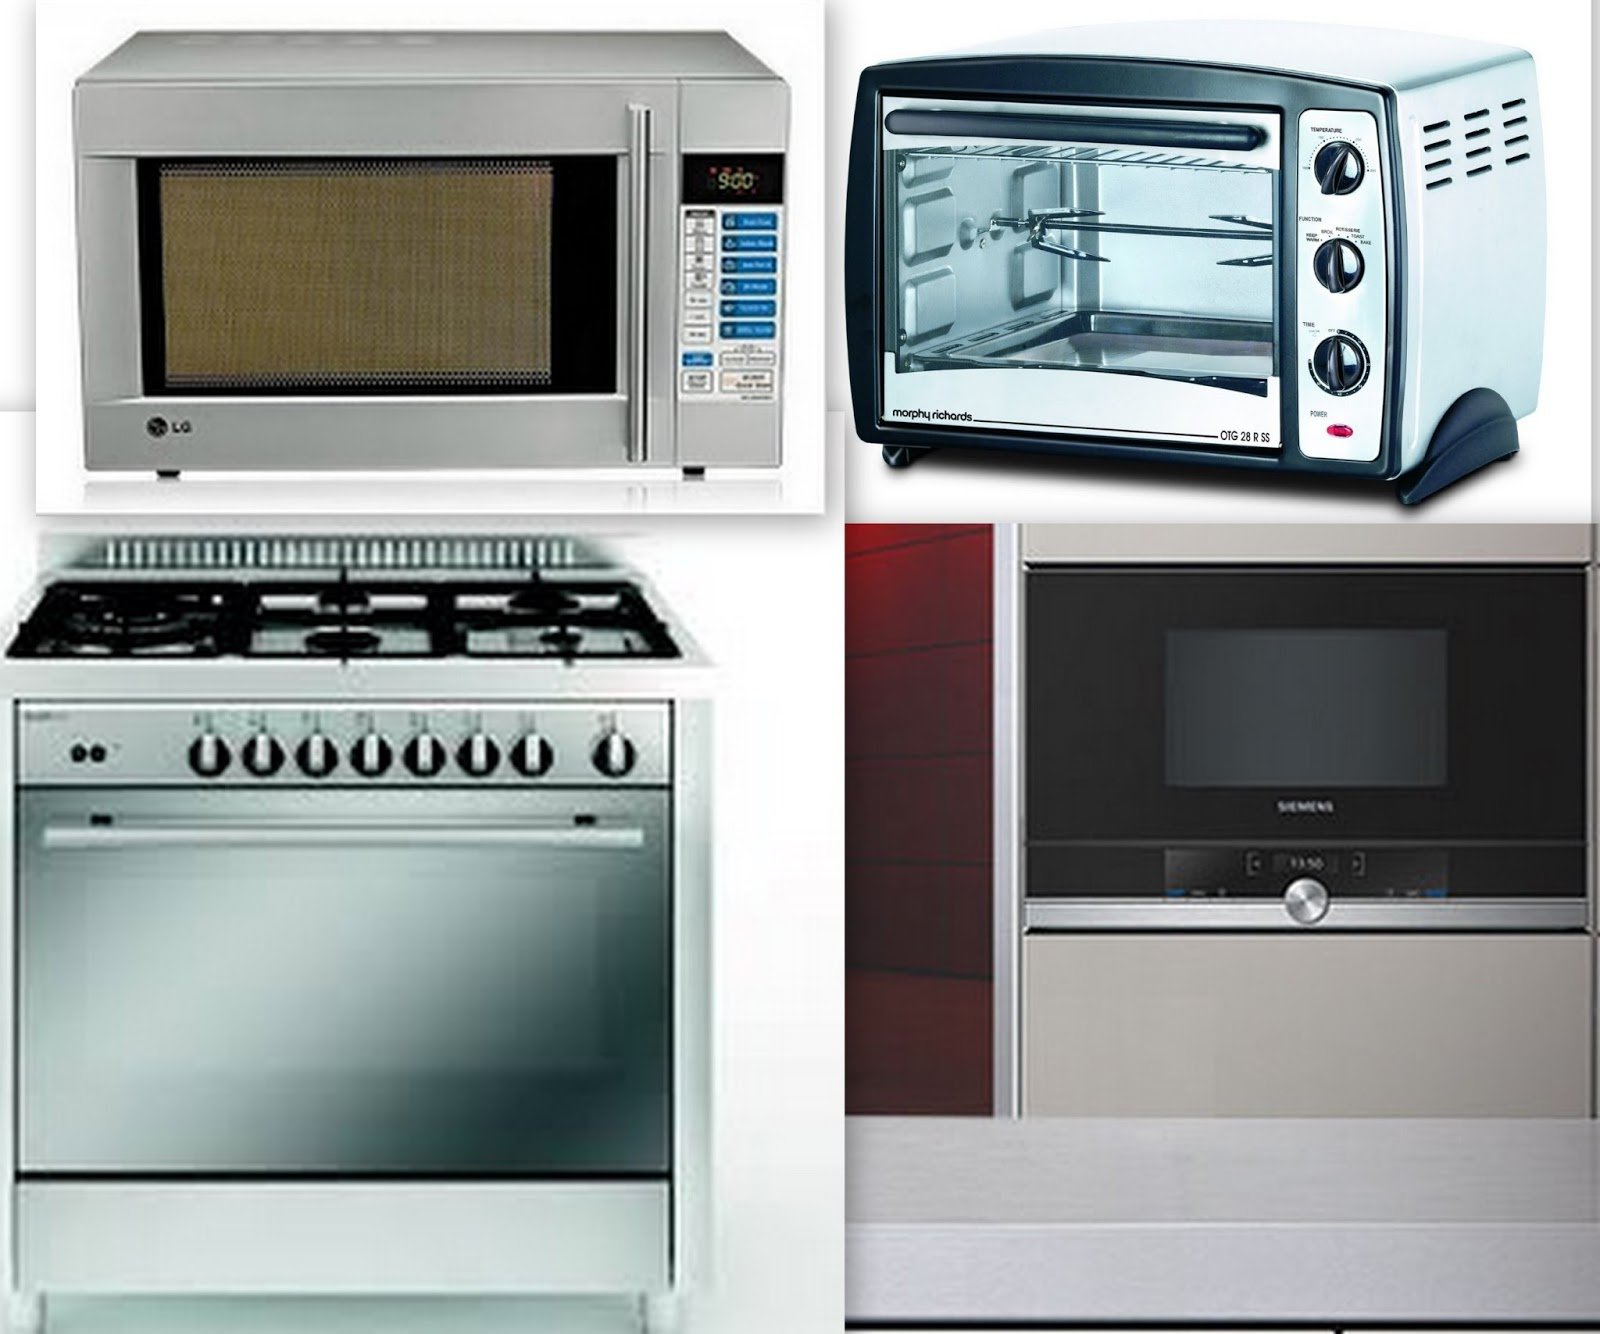 Best Microwave Oven For Baking Cakes India